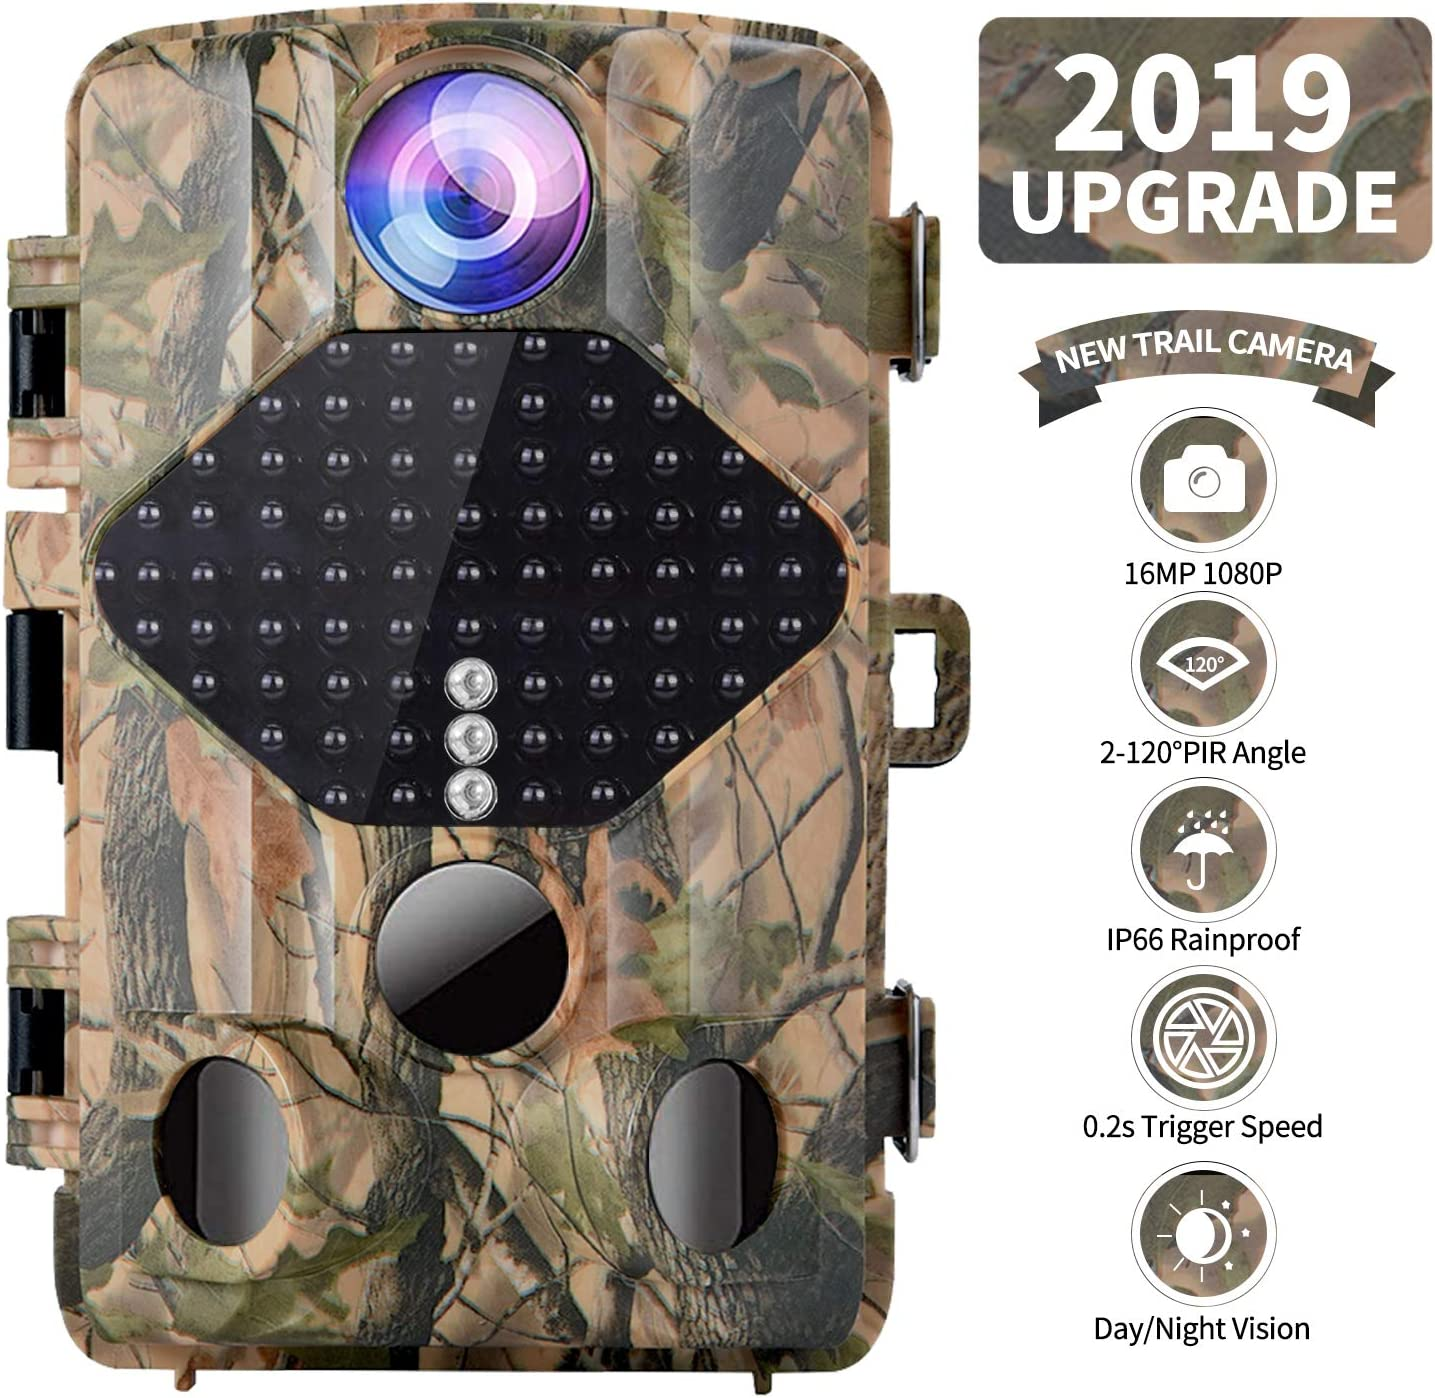 FUNSHION Trail Camera 16MP 1080P Wildlife Hunting Camera with 49 Infrared LEDs Night Vision up to 65ft,120 Wide Angle Lens,IP56 Waterproof and Faster 0.2s-0.6s Triggering Time 1